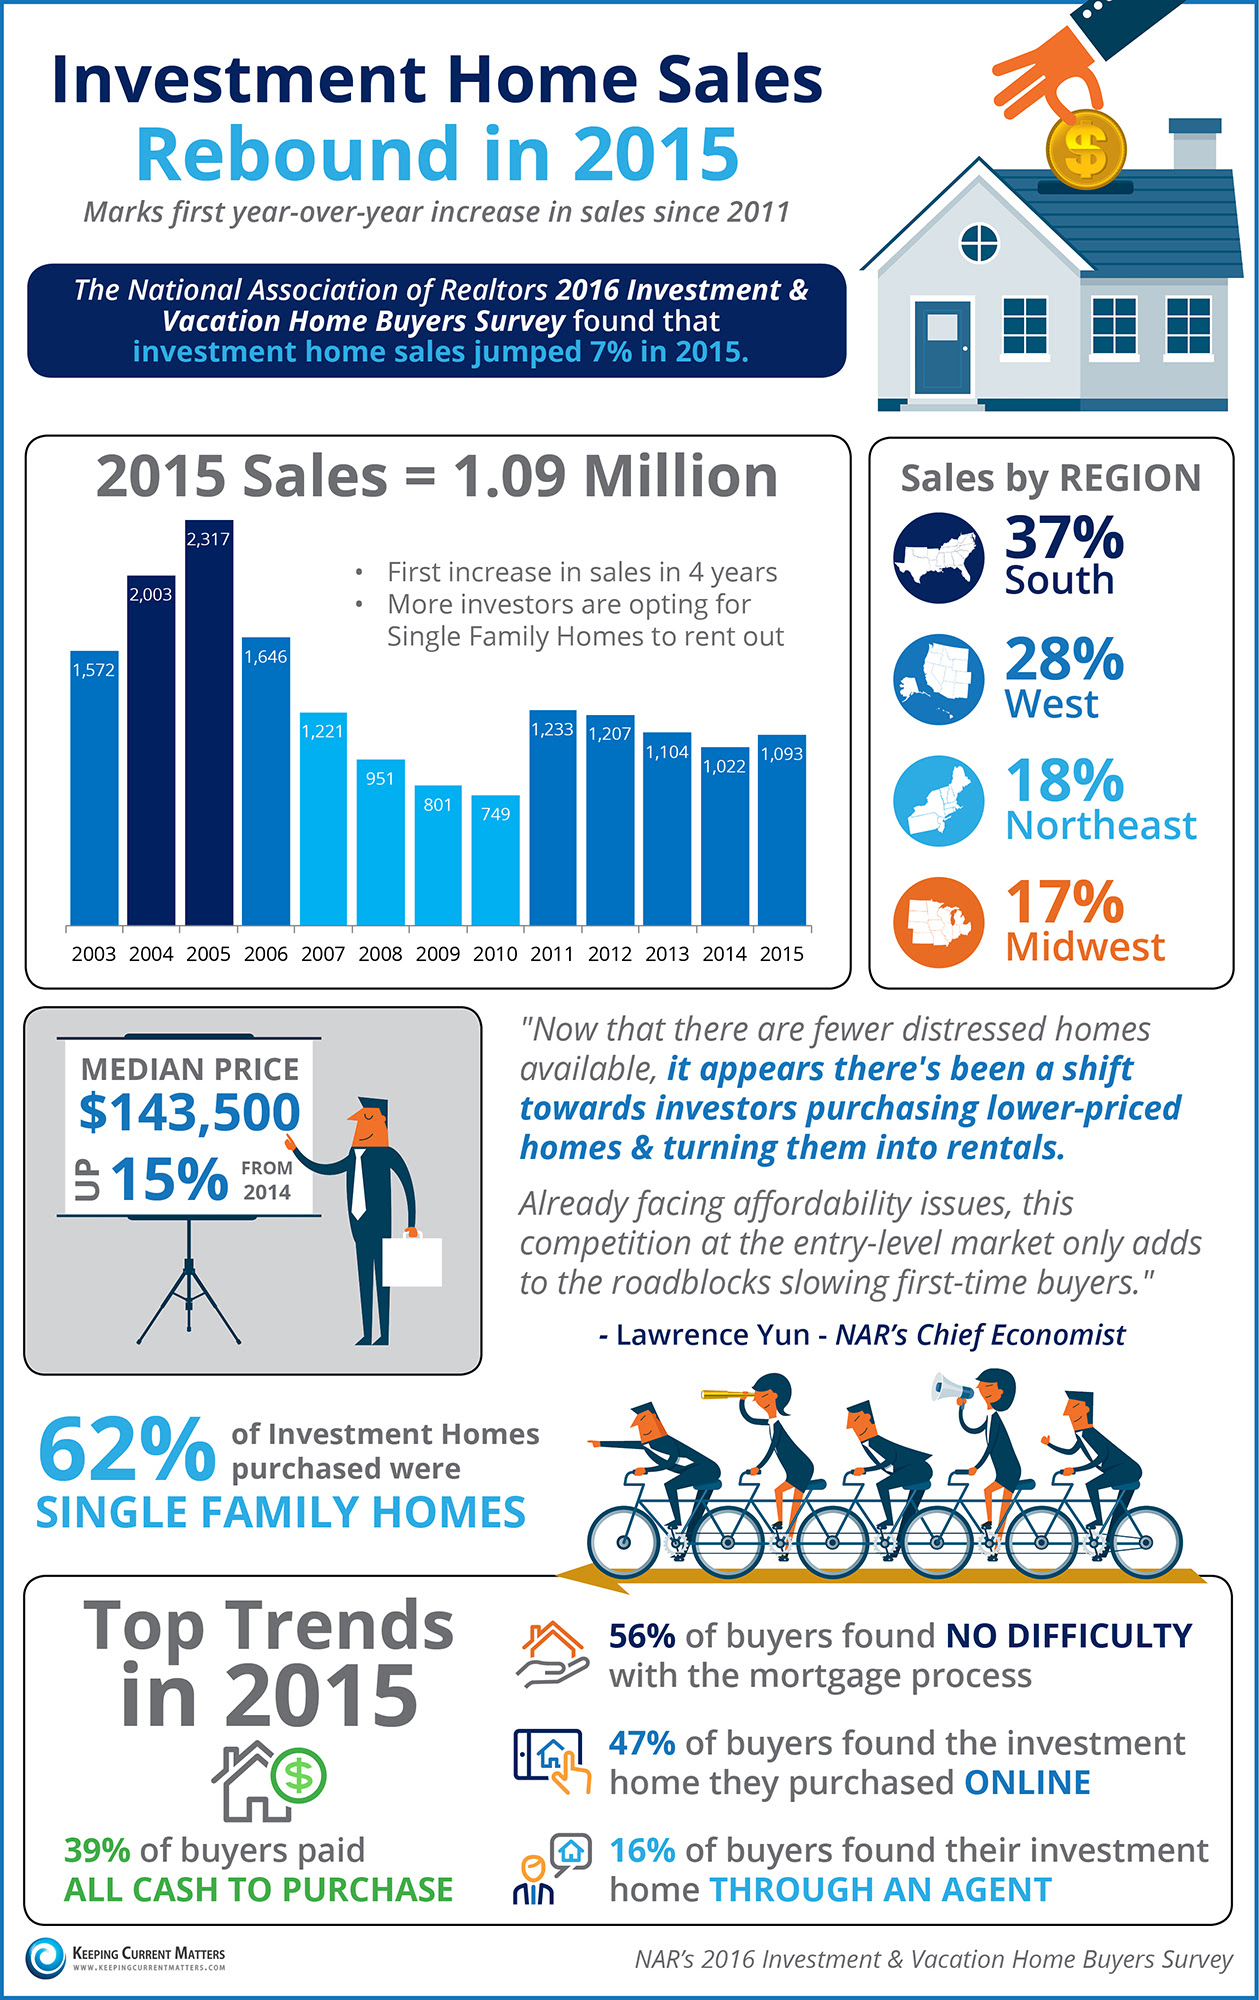 Investment Home Sales Rebound in 2015 | Keeping Current Matters